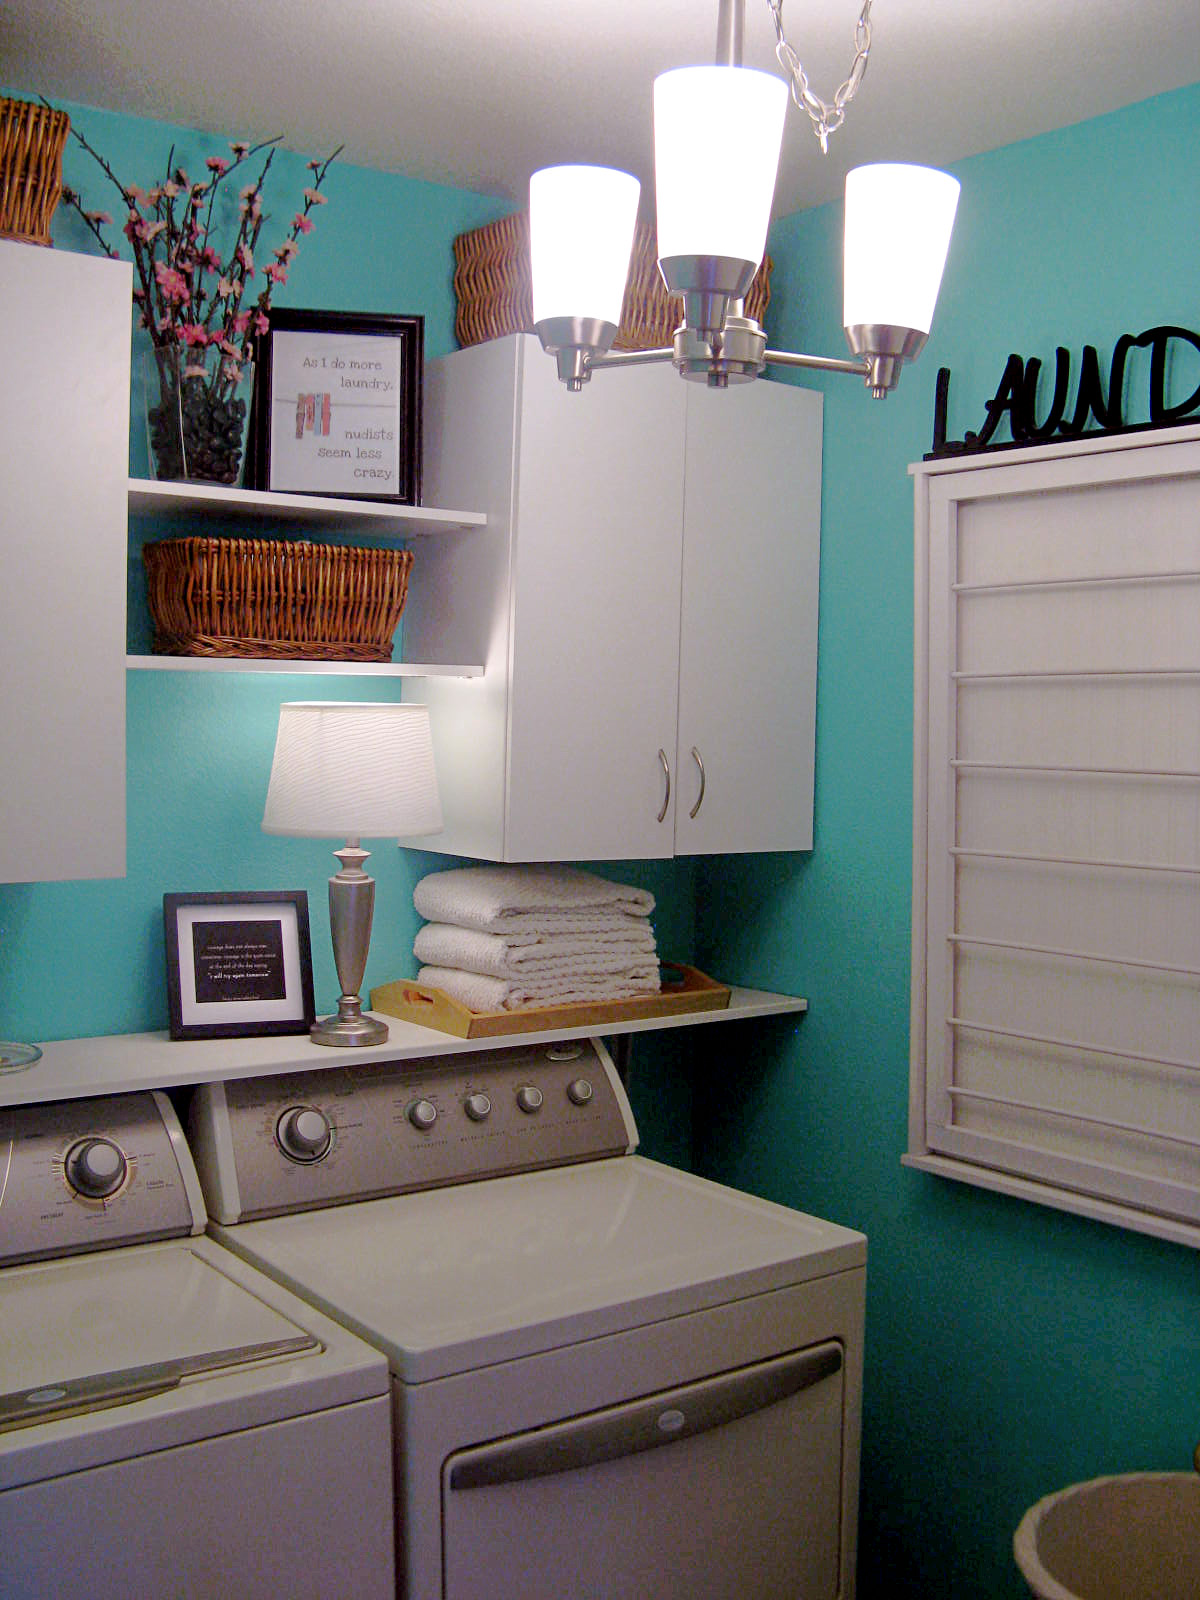 http://inspirationformoms.porch.com/the-laundry-room-reveal/